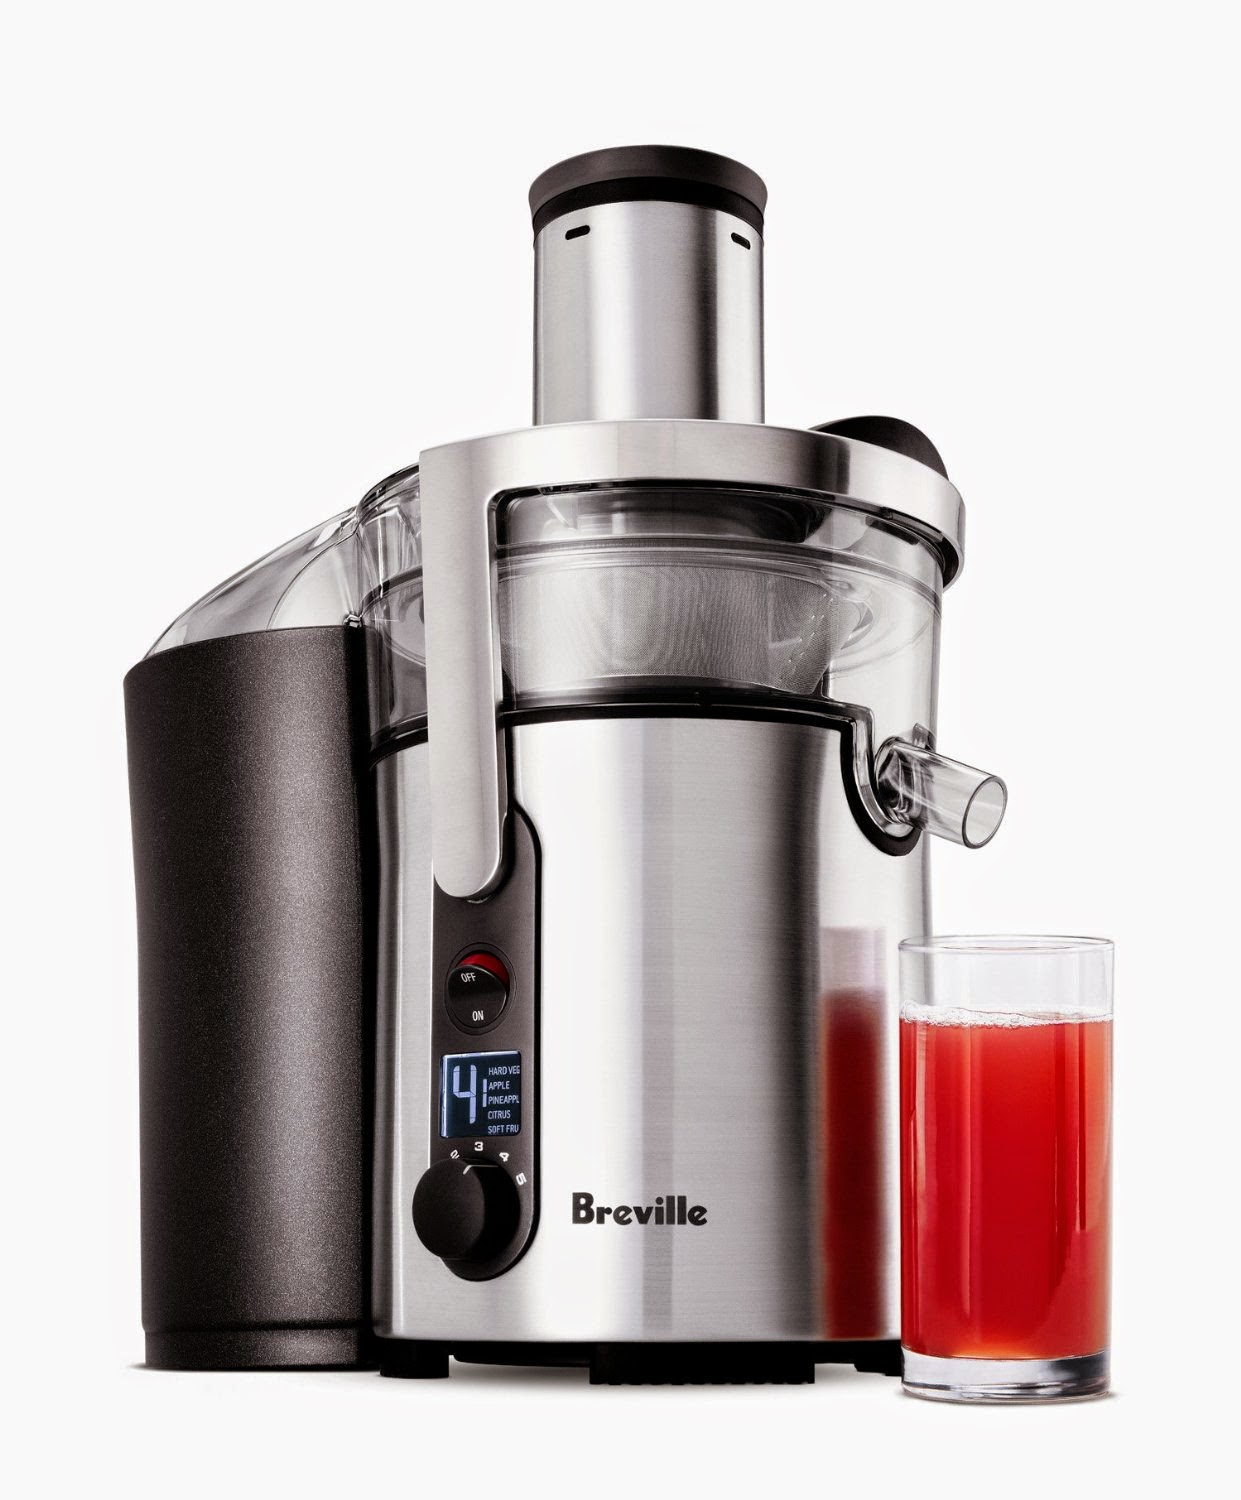 Breville BJE510XL Multi-Speed Juicer, variable 5-speeds, centrifugal juicer, smart chip senses loads and auto adjusts power, 900 watt motor